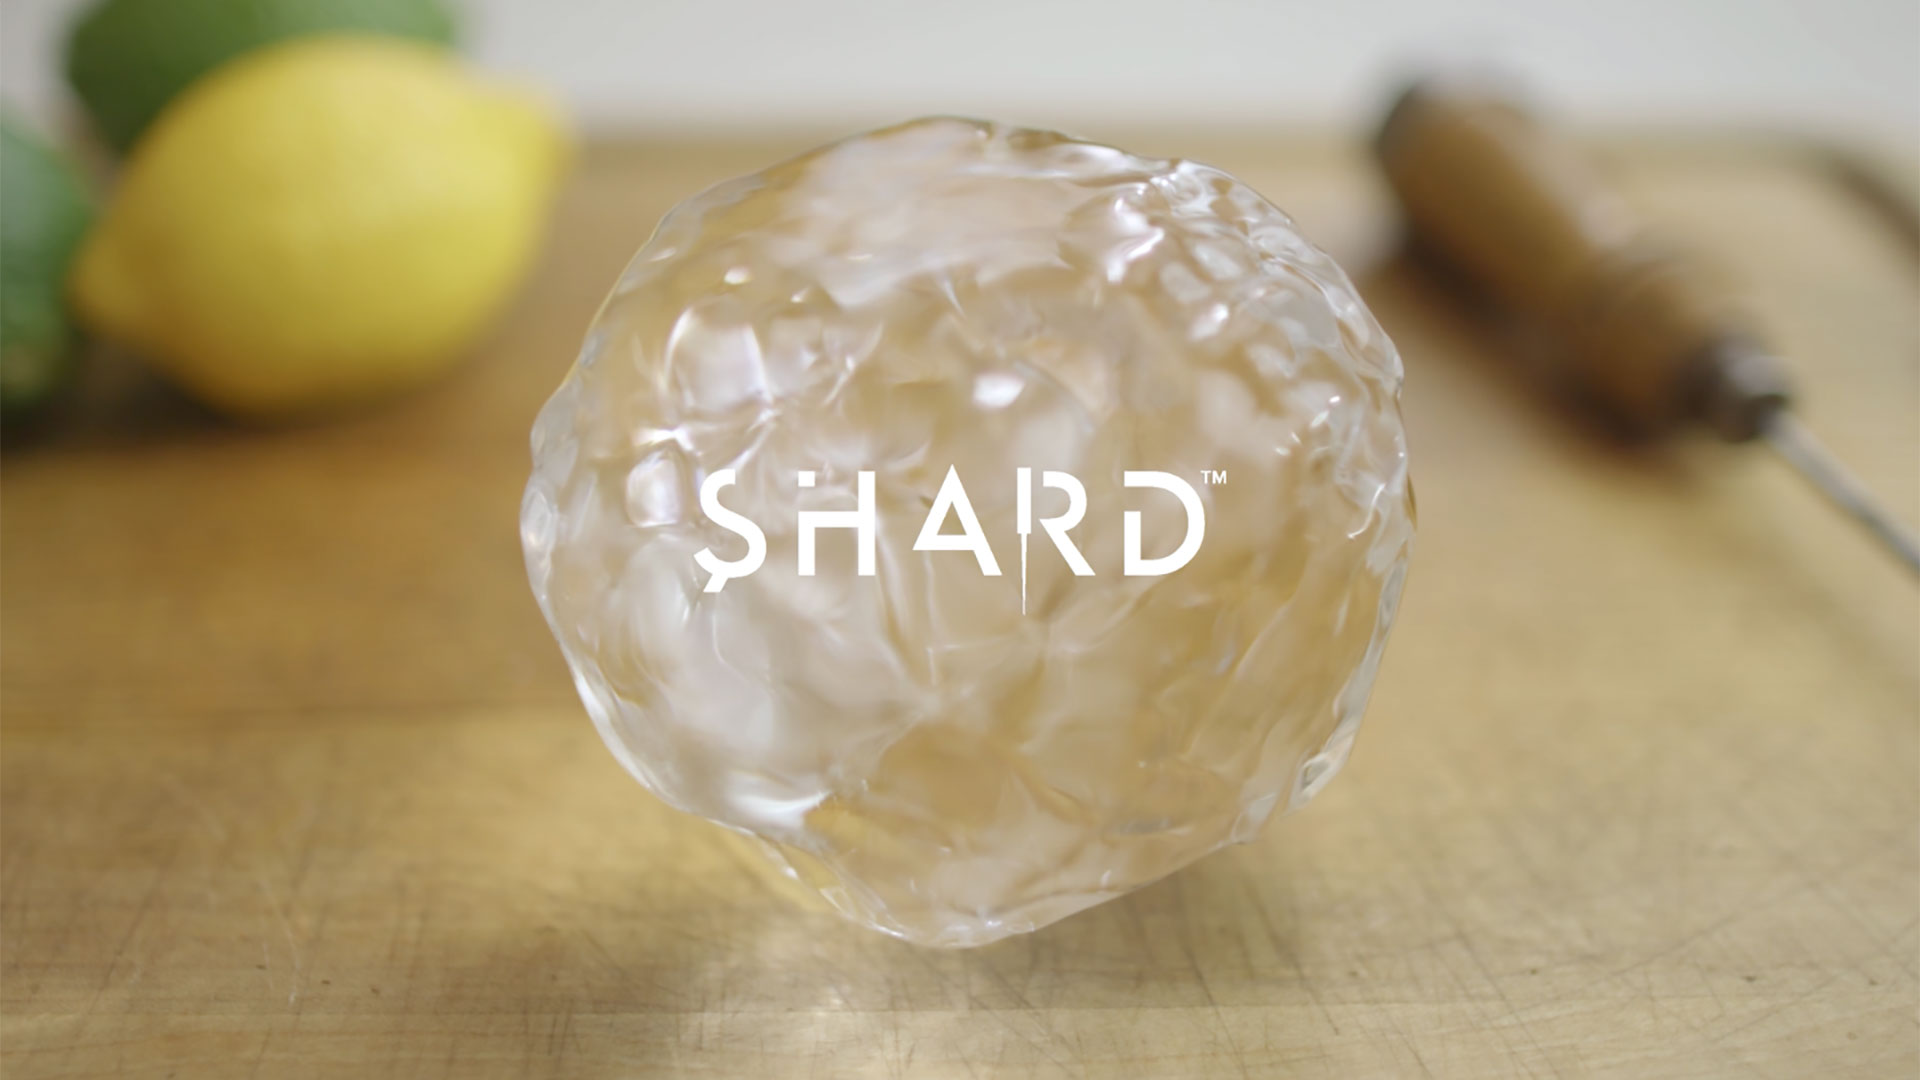 Hand-carved ice ball on a cutting board overlaid with the Shard logo, with lemon, lime, and ice pick in the background